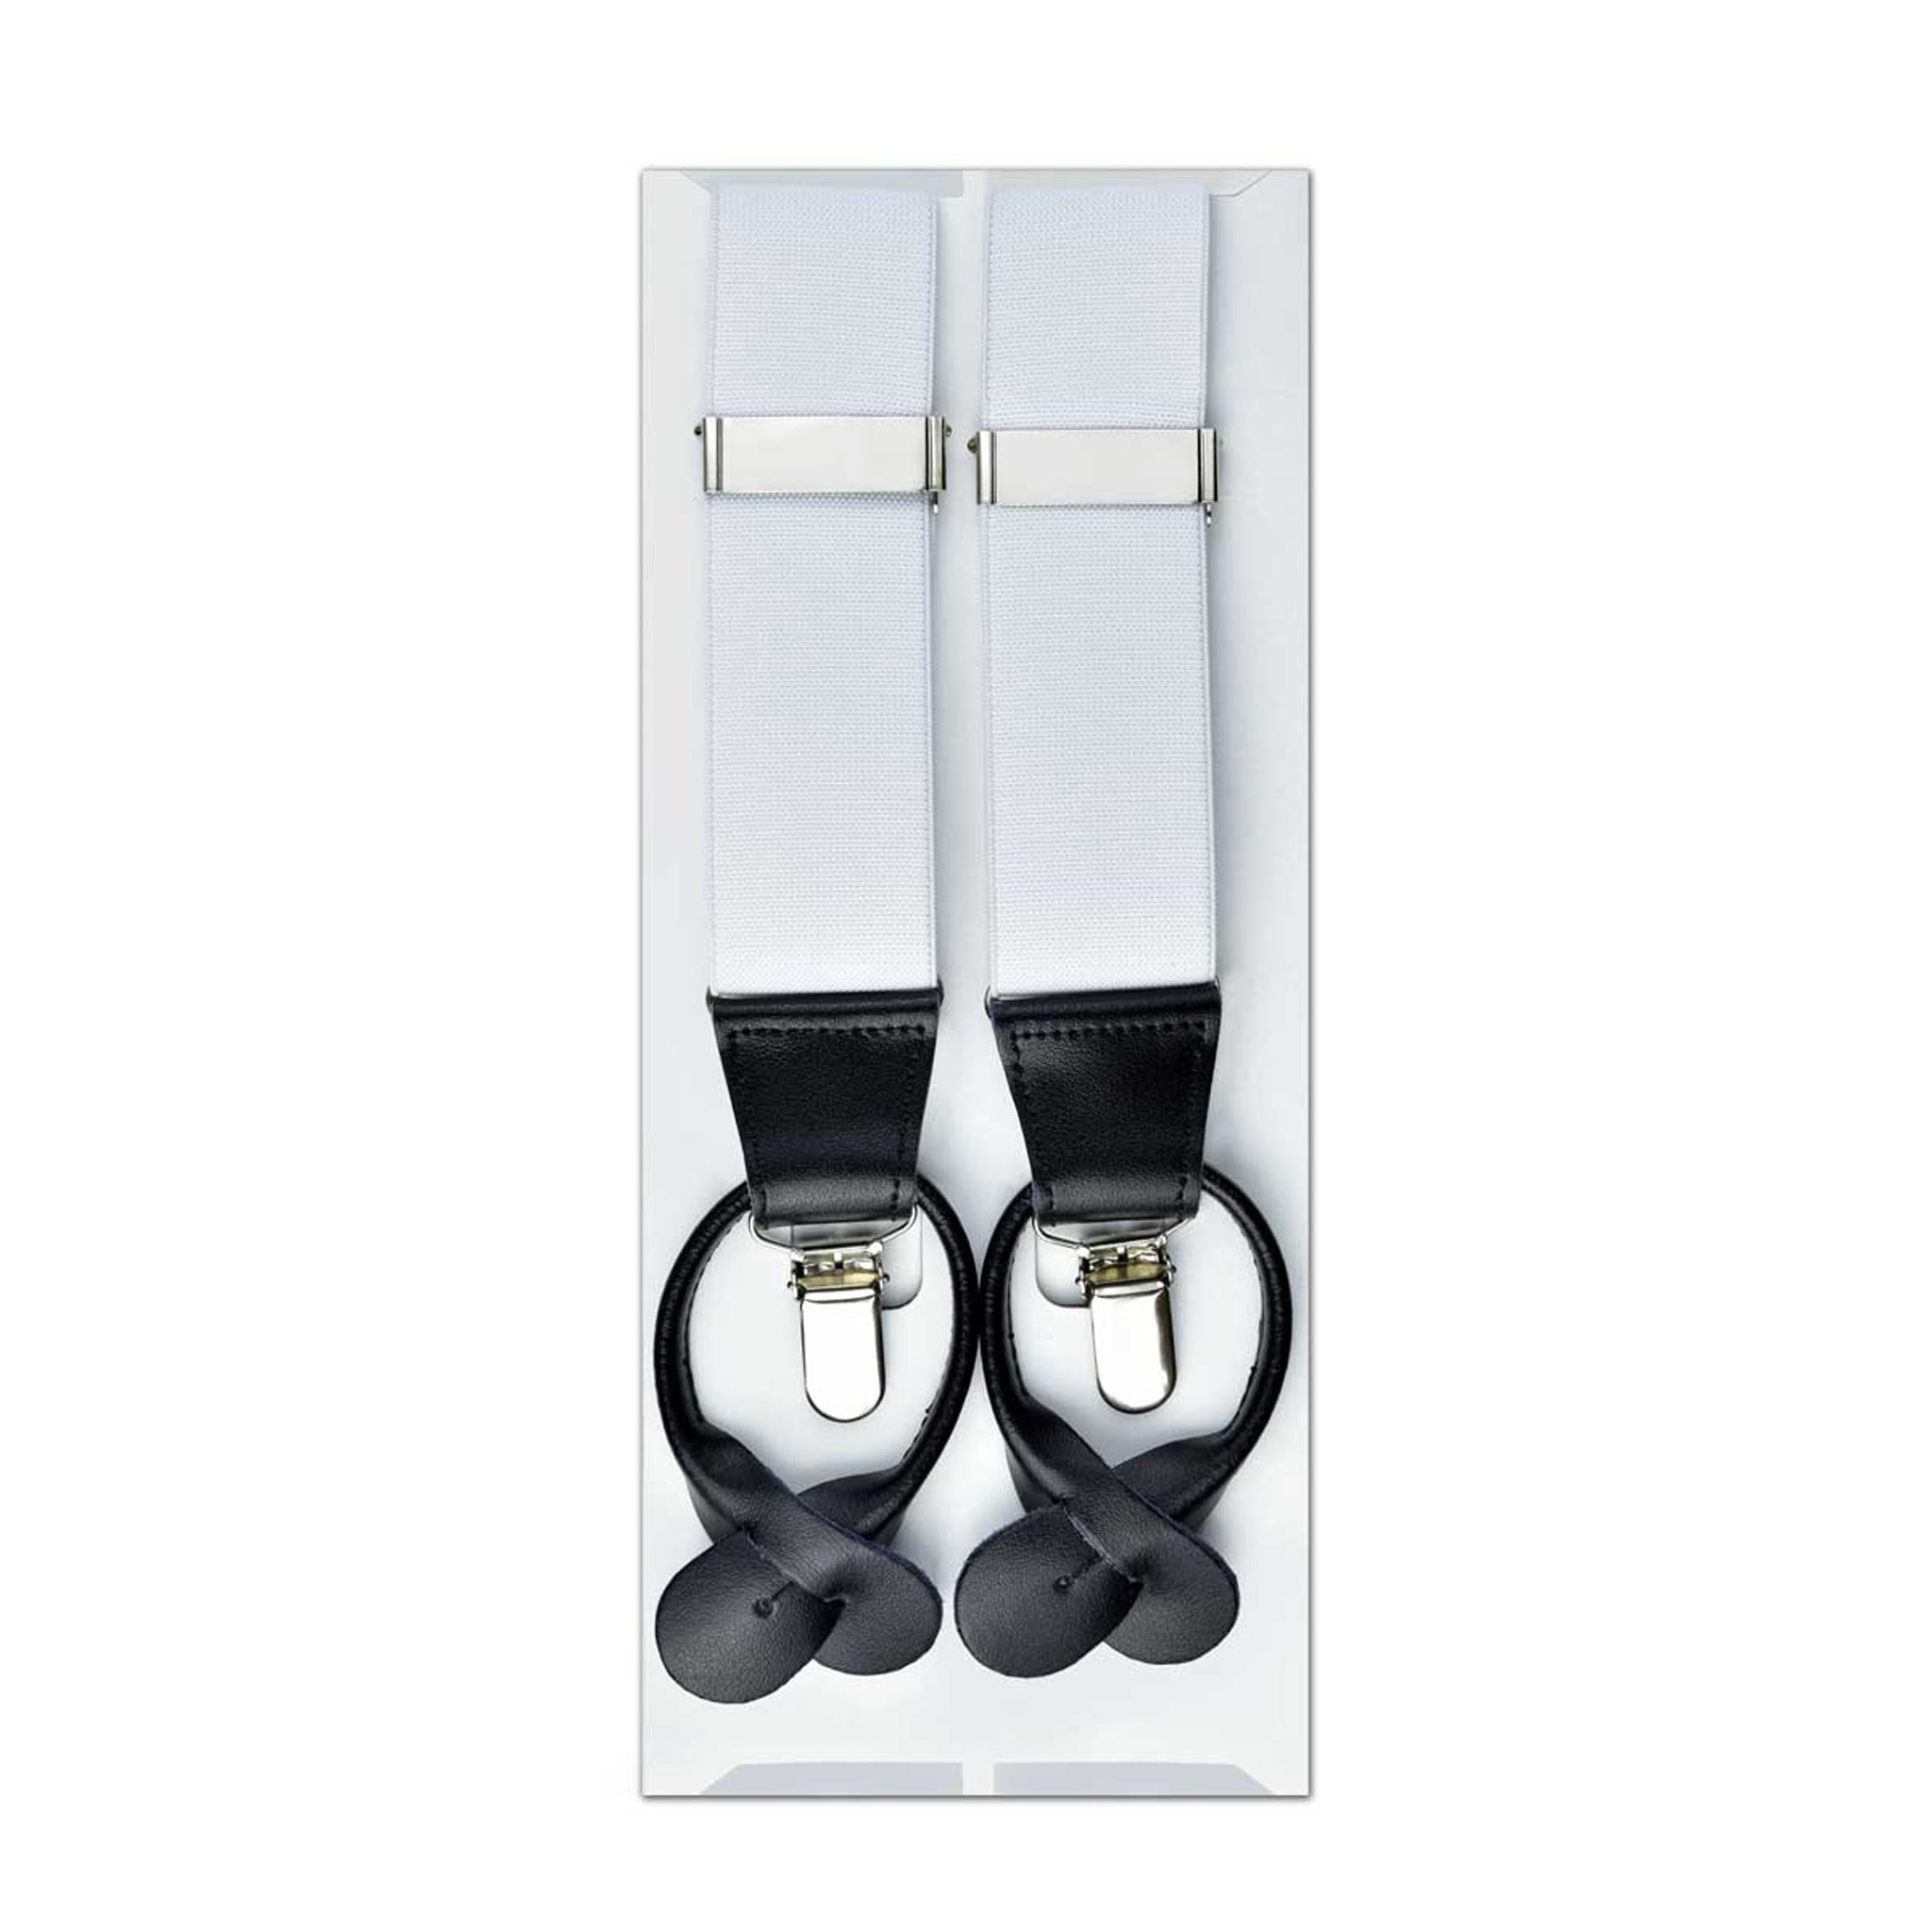 MISSOURI Theo Suspenders in Snow White - Giorgio Mandelli® Official Site | GIORGIO MANDELLI Made in Italy